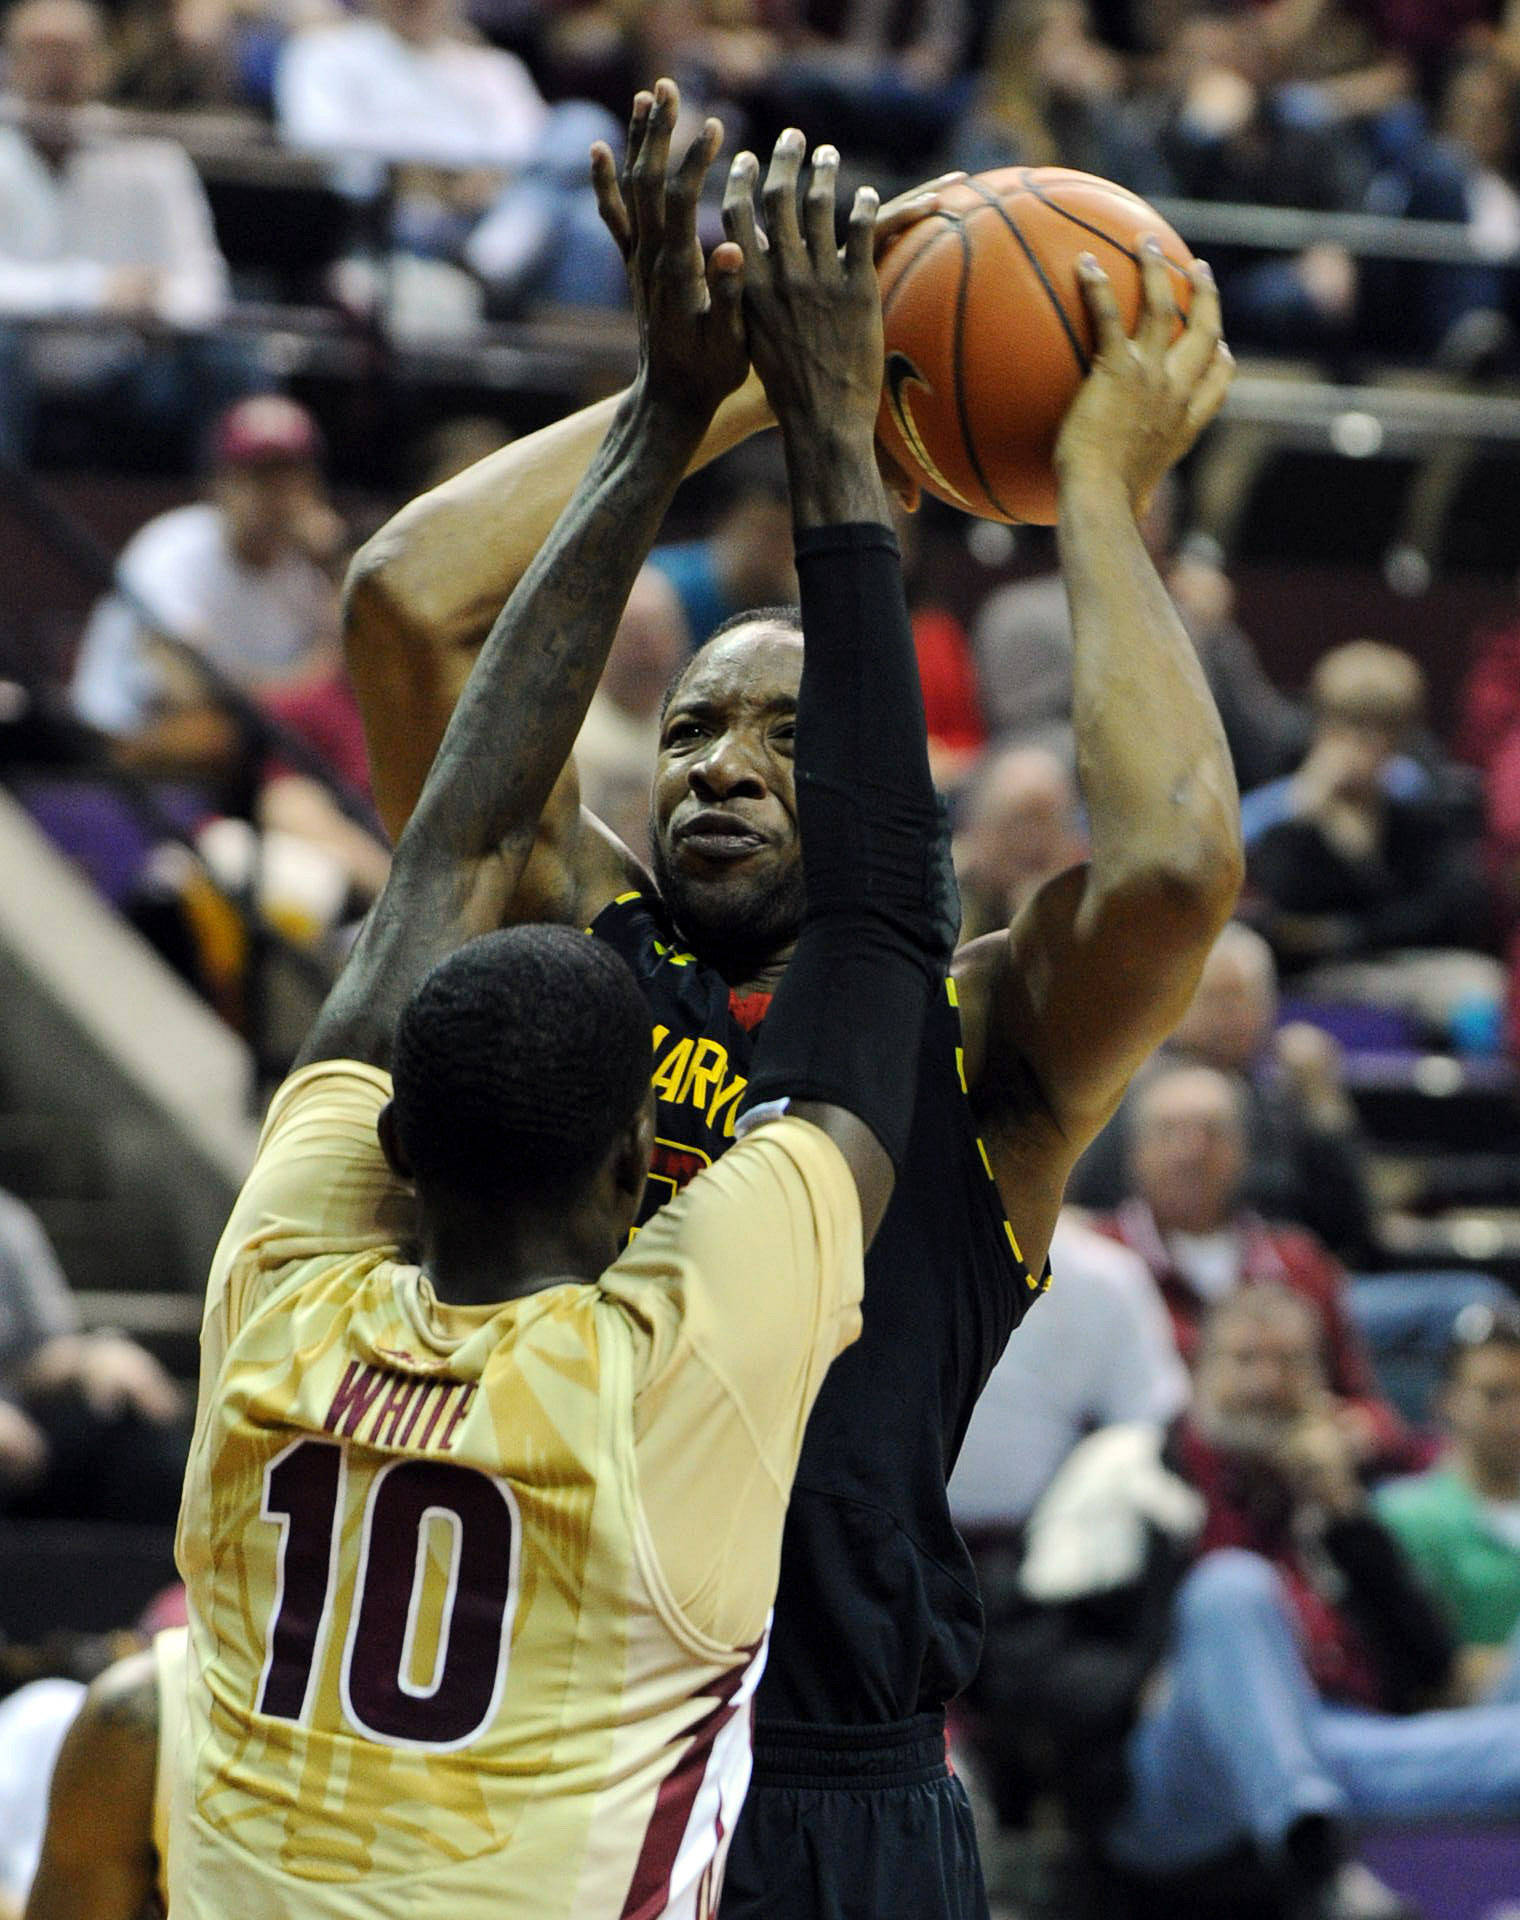 Jan 12, 2014; Tallahassee, FL, USA; Maryland Terrapins guard Dez Wells (32) is defended by Florida State Seminoles forward Okaro White (10) during the first half of the game at the Donald L. Tucker Center. Mandatory Credit: Melina Vastola-USA TODAY Sports